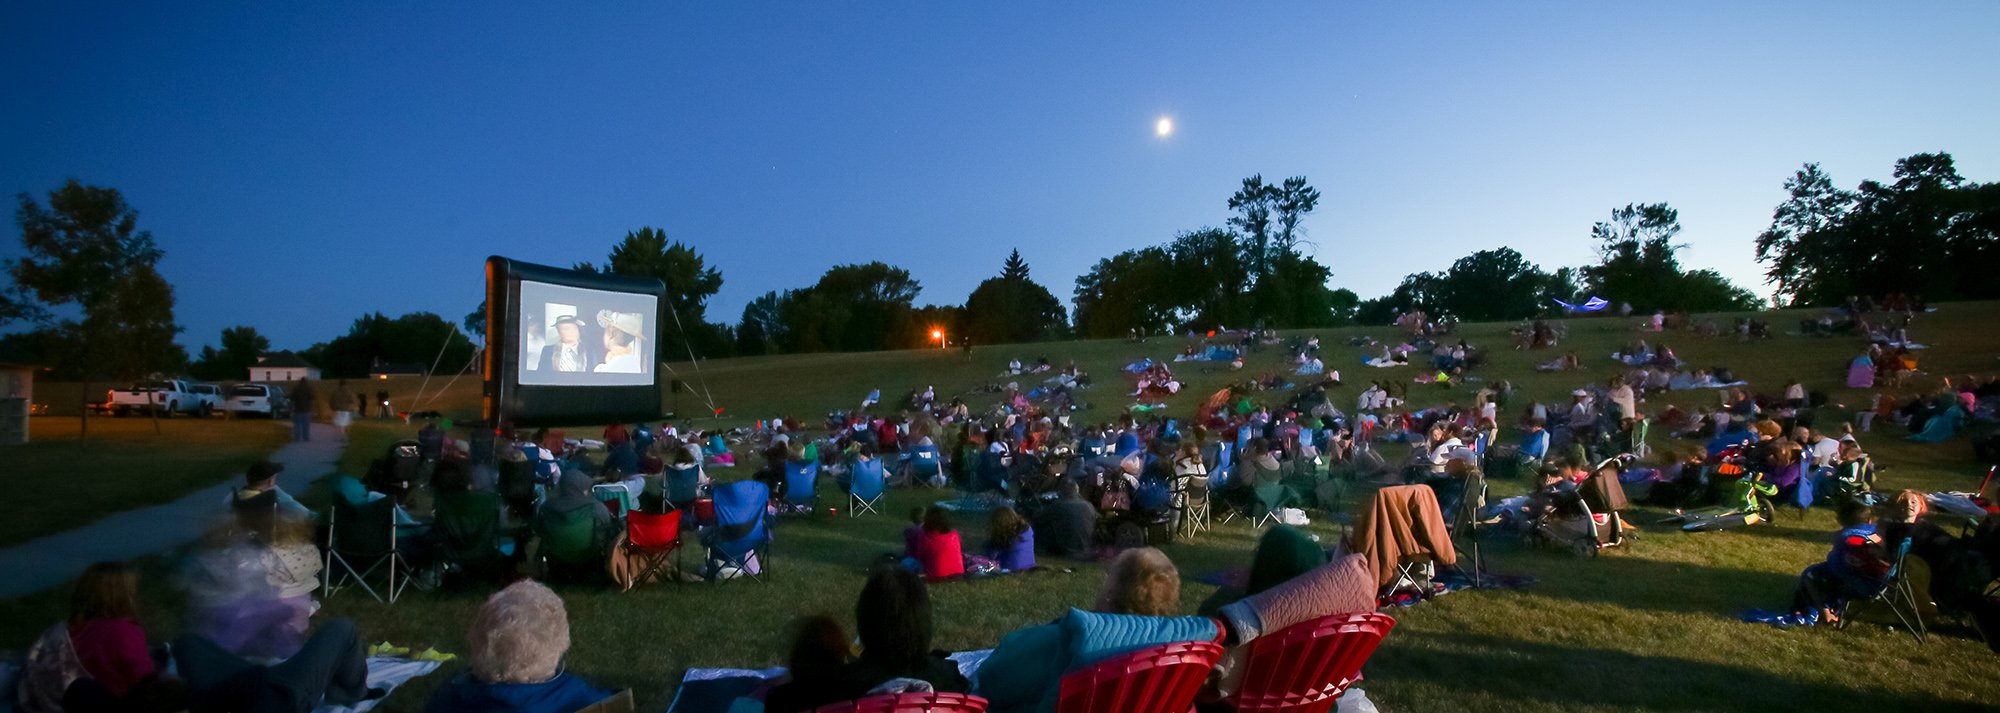 Lakeway Movies in the Park